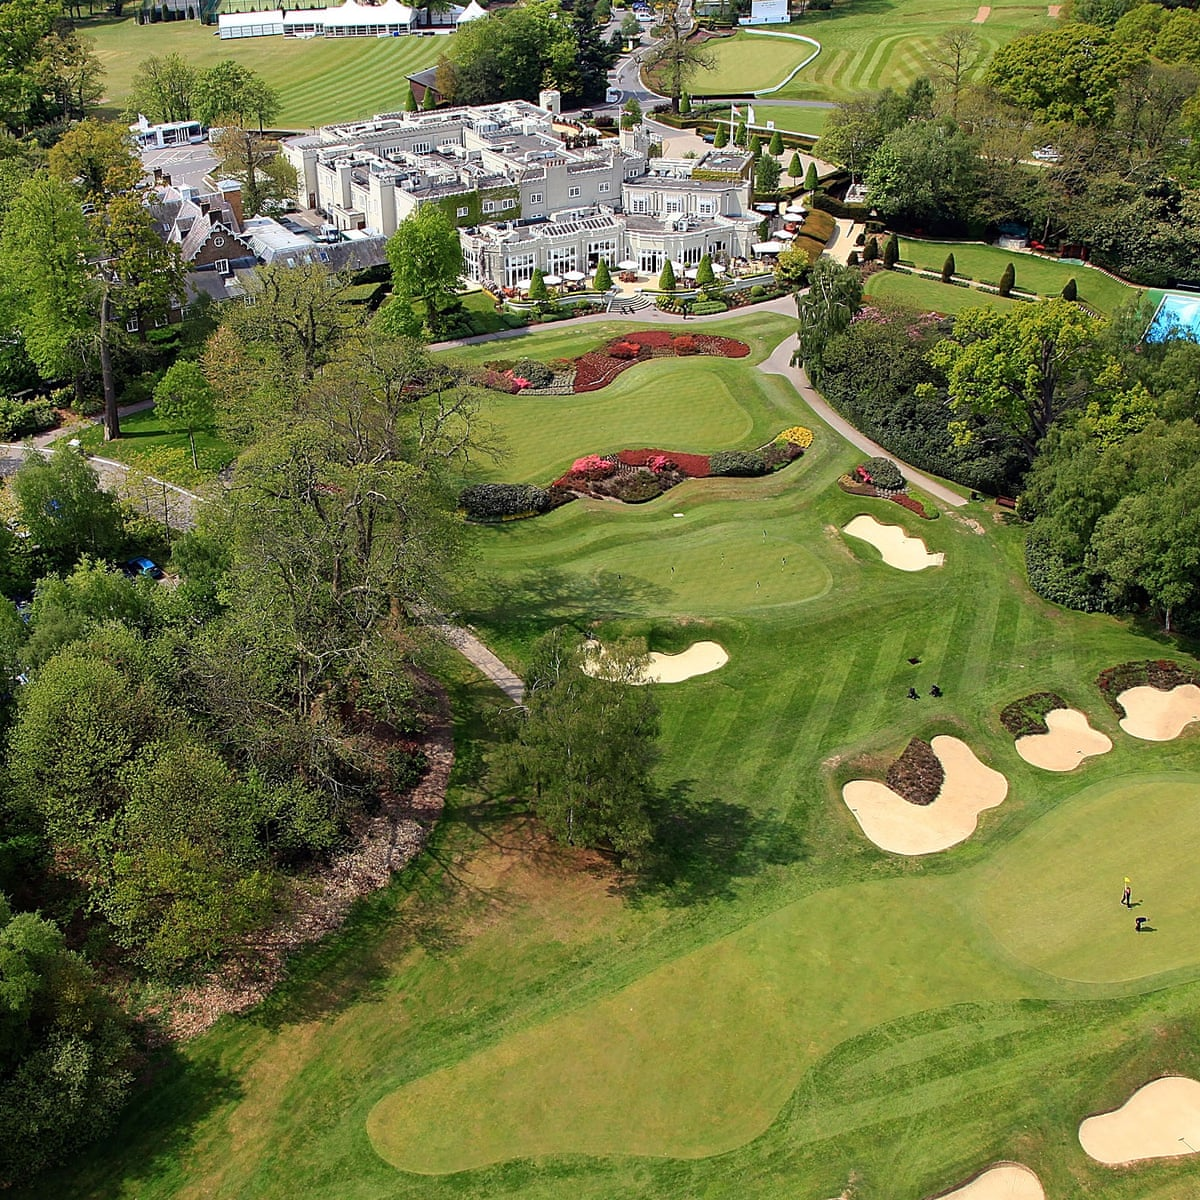 The rich vs the very, very rich the Wentworth golf club rebellion ...